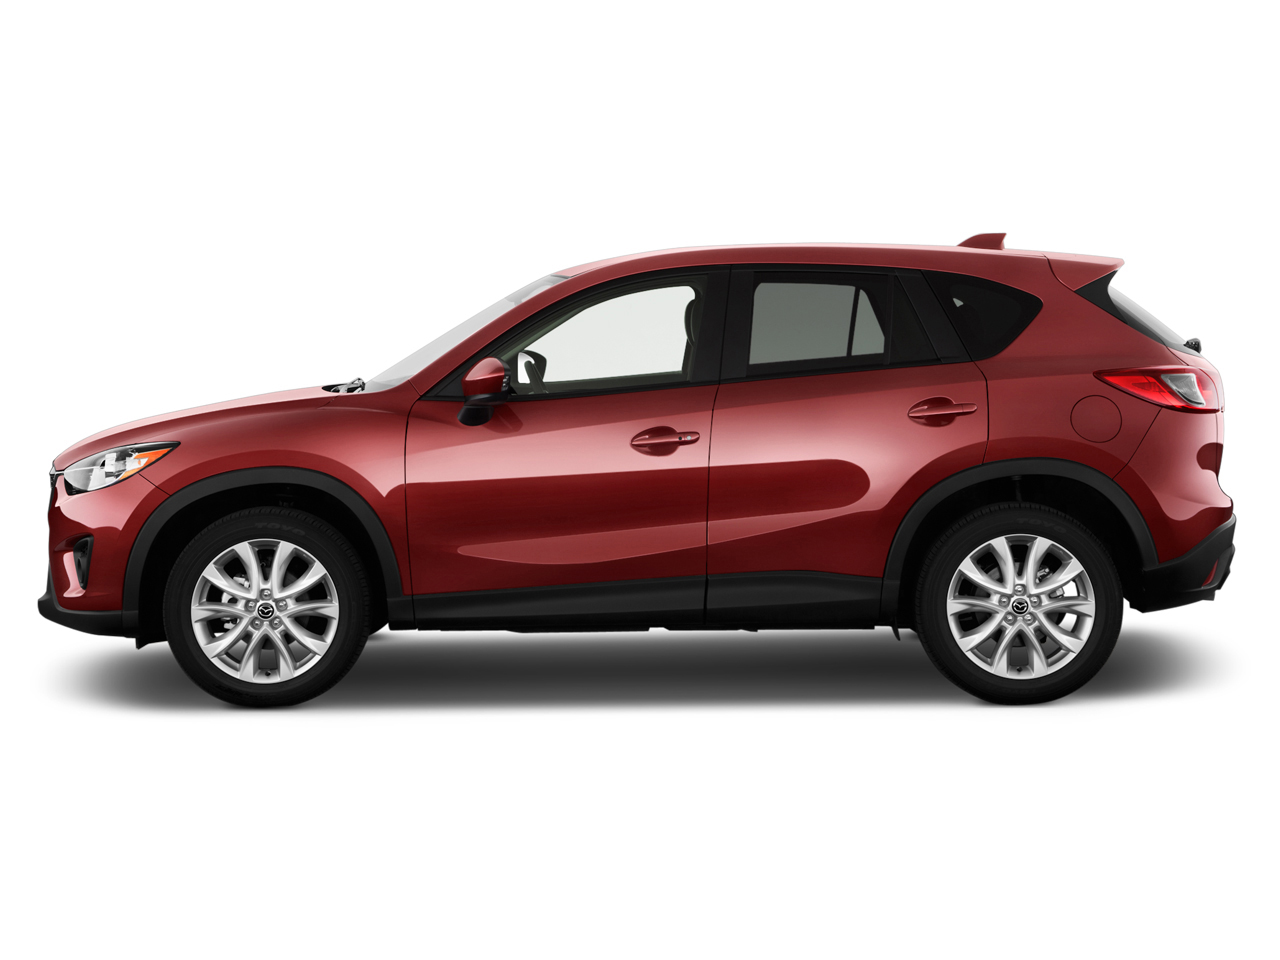 new and used mazda cx 5 prices photos reviews specs the car connection. Black Bedroom Furniture Sets. Home Design Ideas